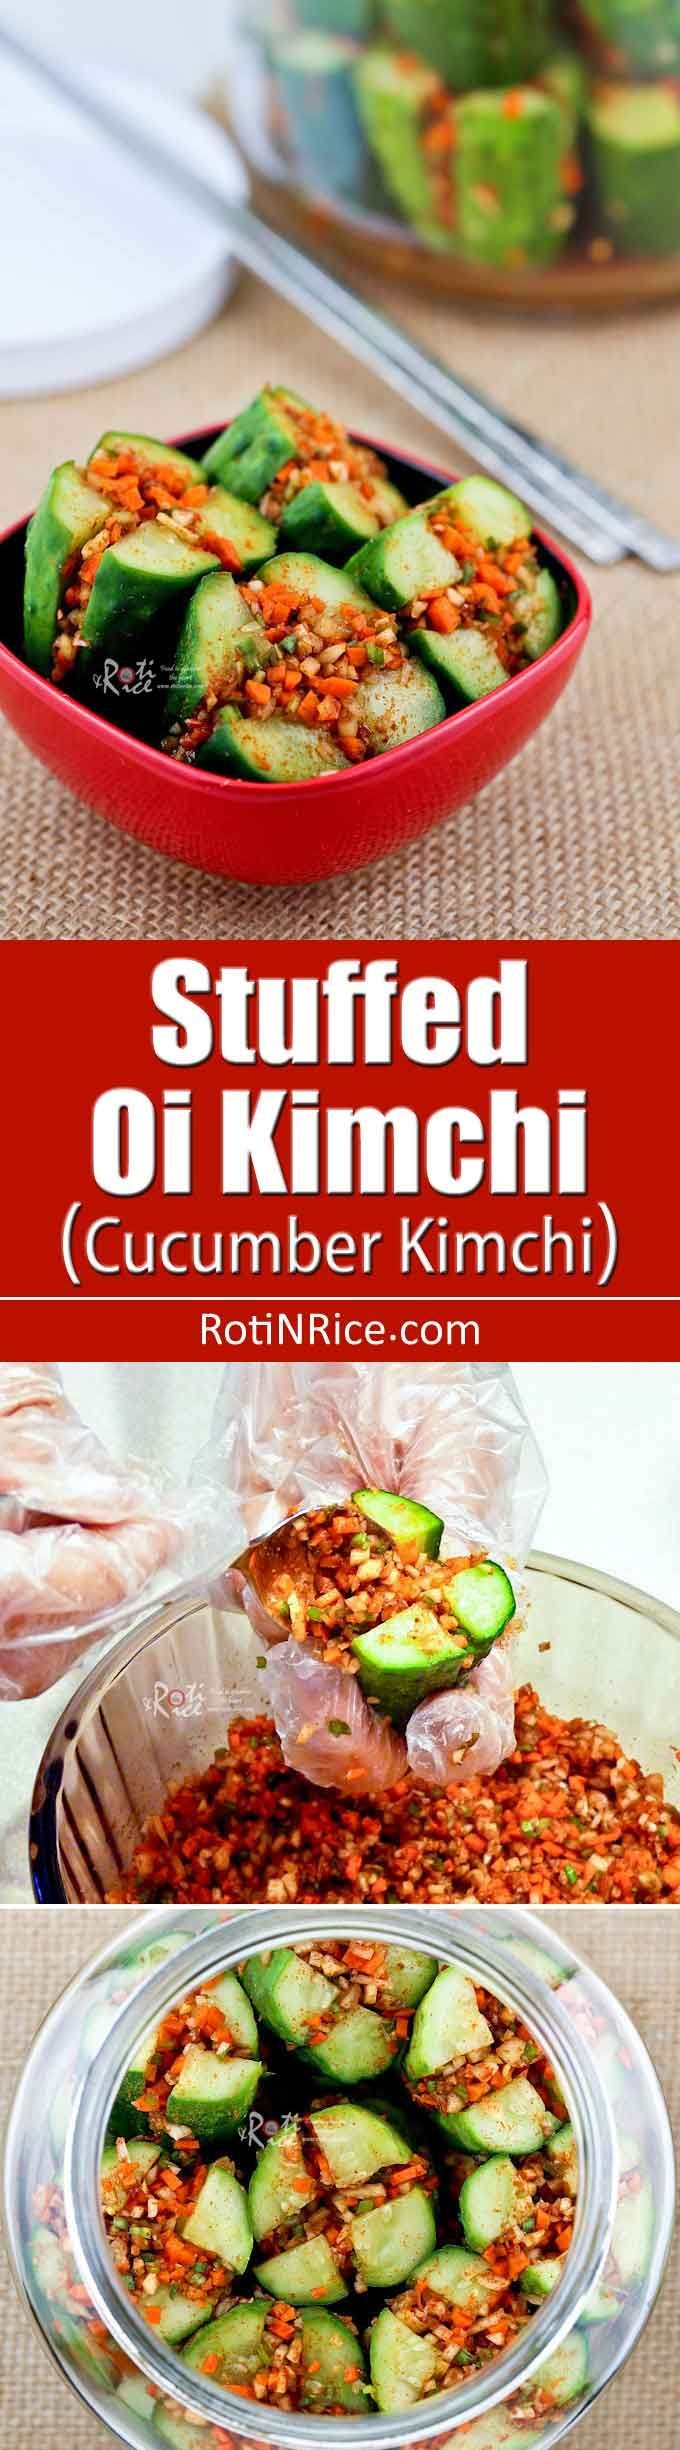 This crunchy Stuffed Oi Kimchi (Cucumber Kimchi) is a wonderful condiment during the warm summer months when small Kirby cucumbers are easily available.   RotiNRice.com